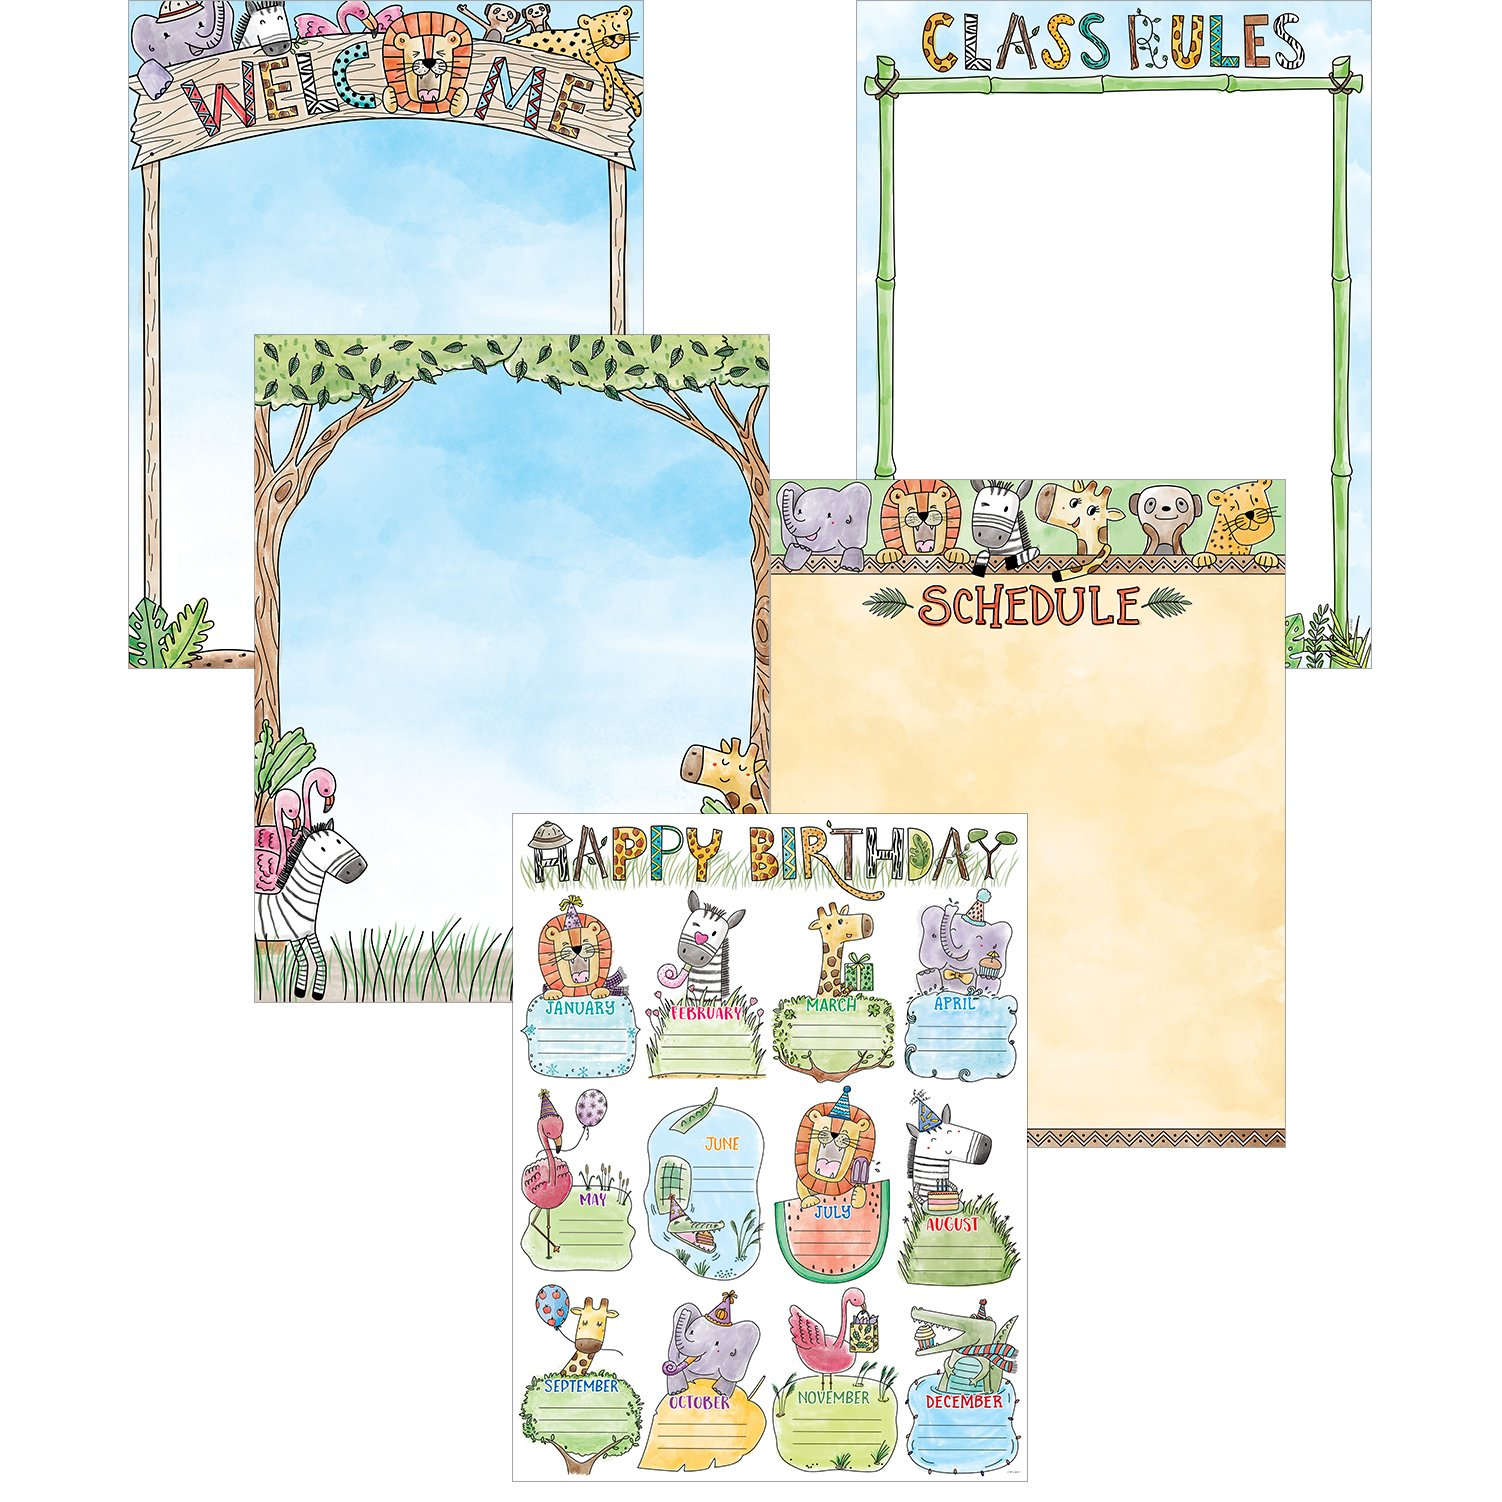 Cheap Classroom Seating Chart Template Word Find Classroom Seating